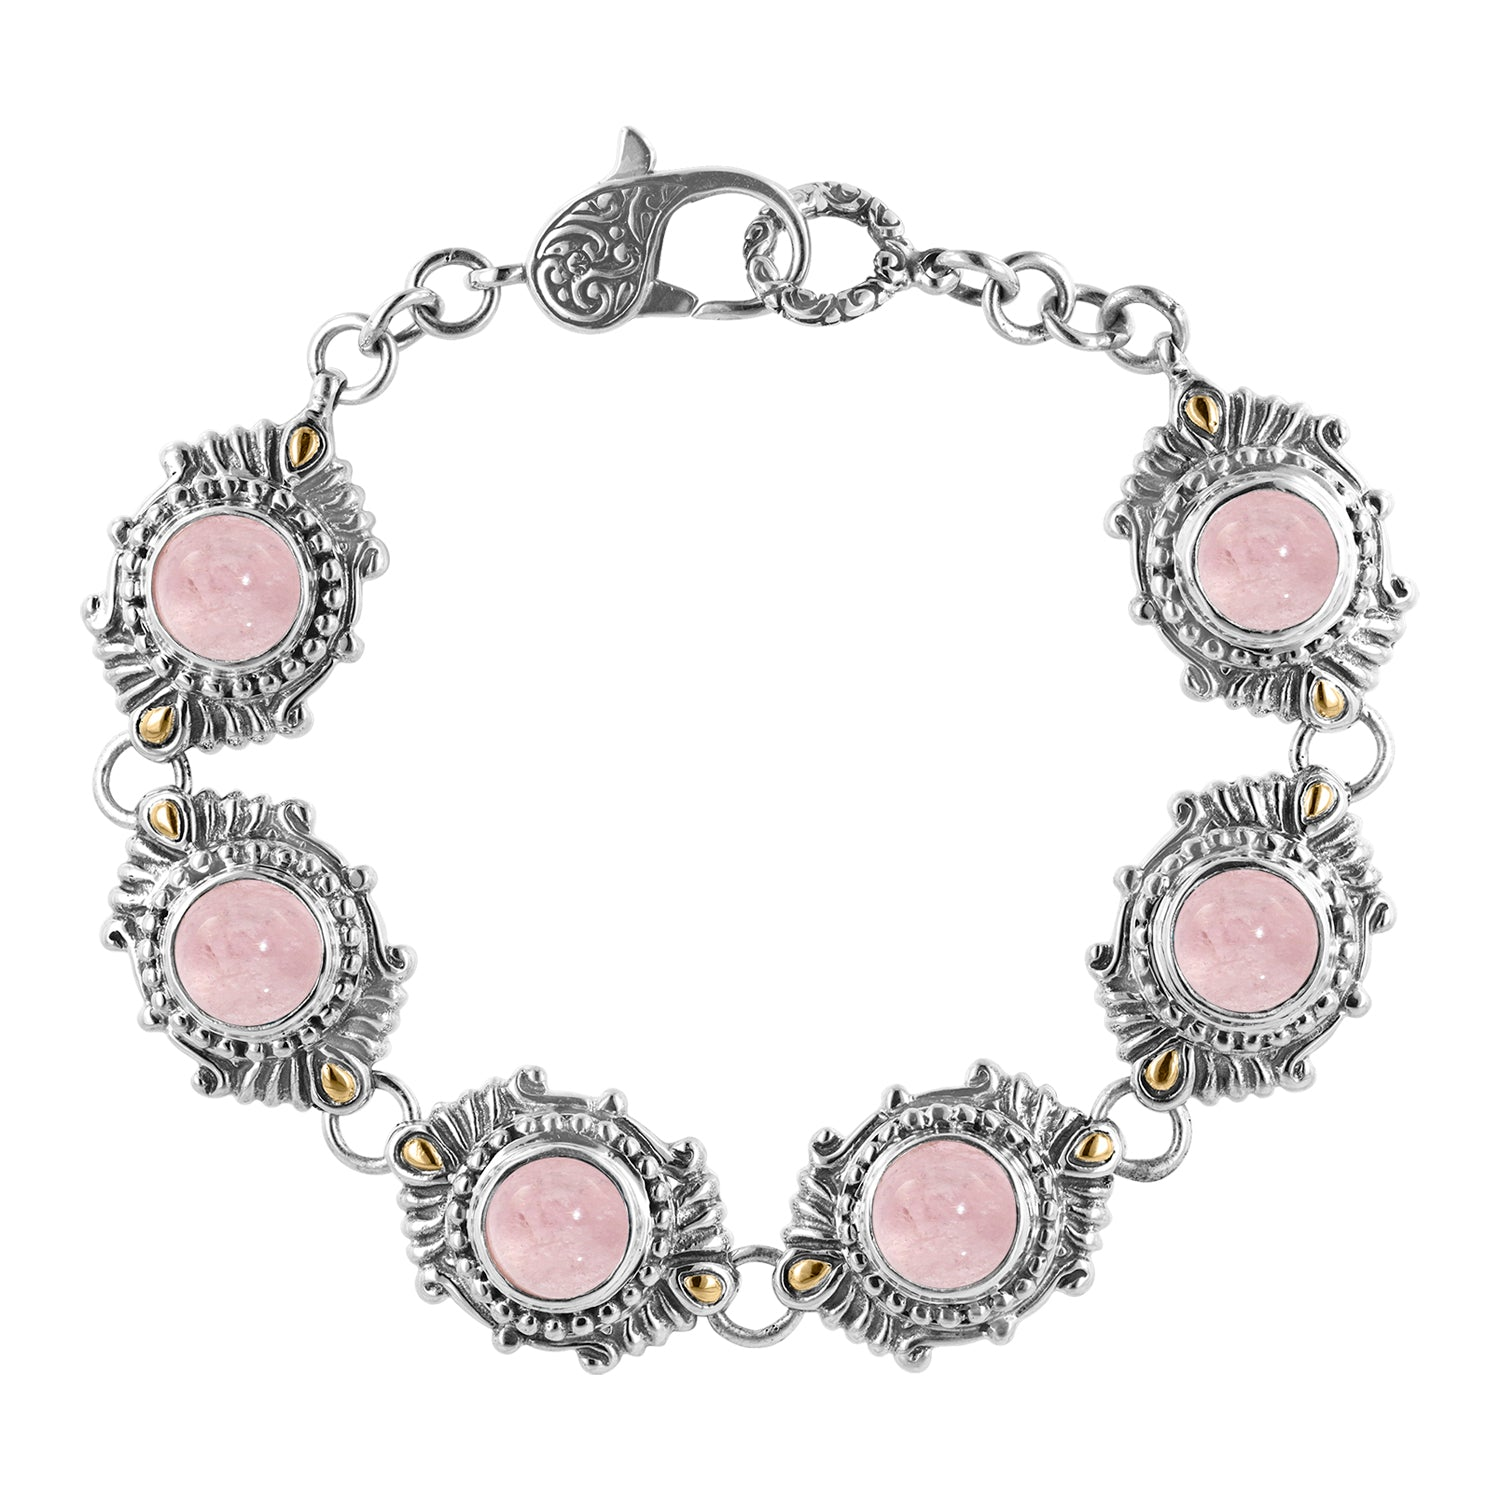 Bali Sterling Silver Morganite Station Bracelet with 18K Gold Accents